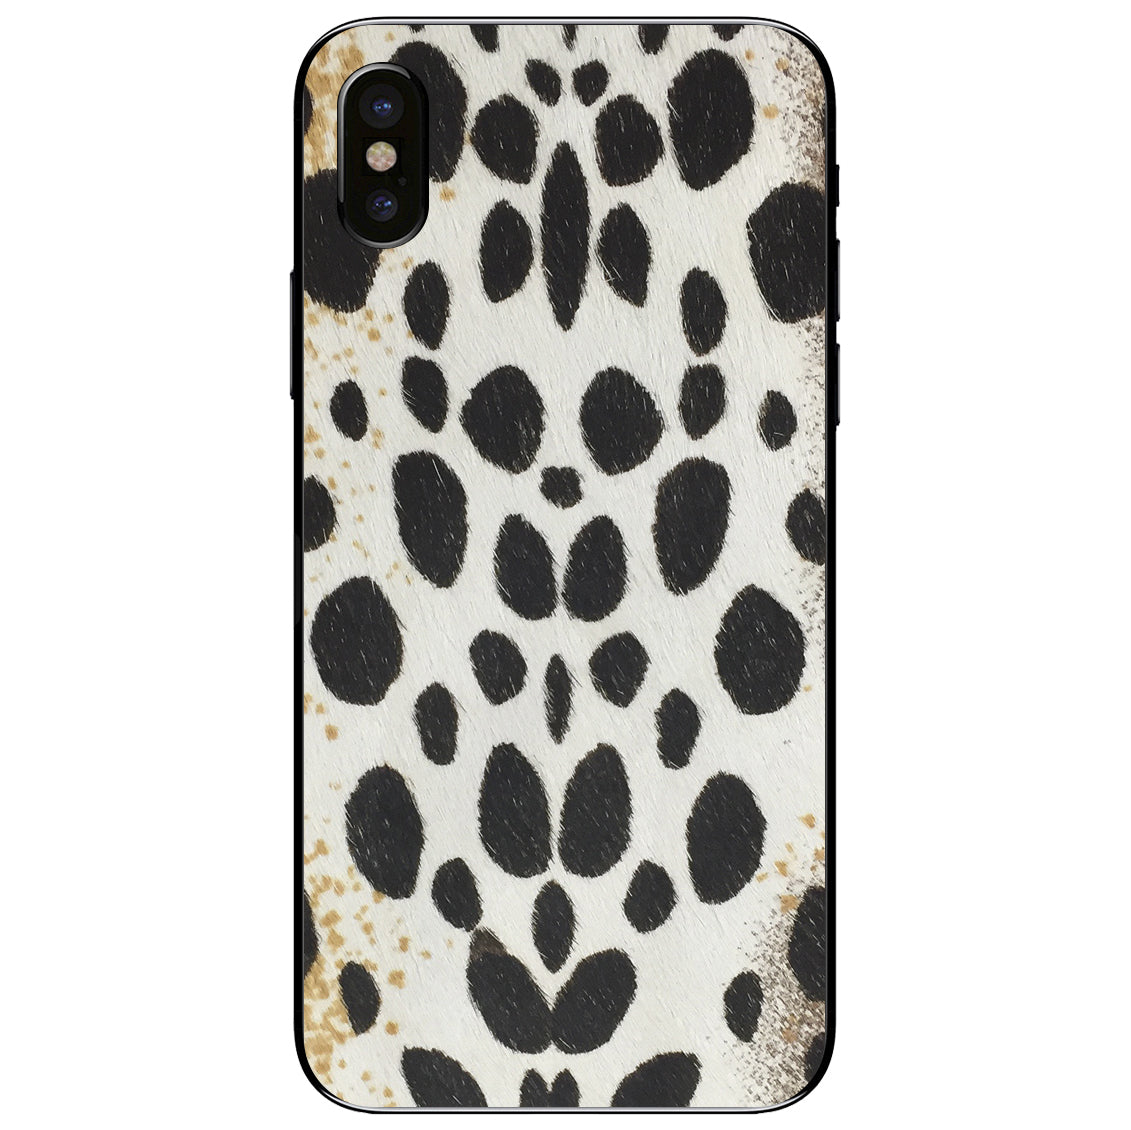 White Leopard Print Calf Hair iPhone X Leather Skin